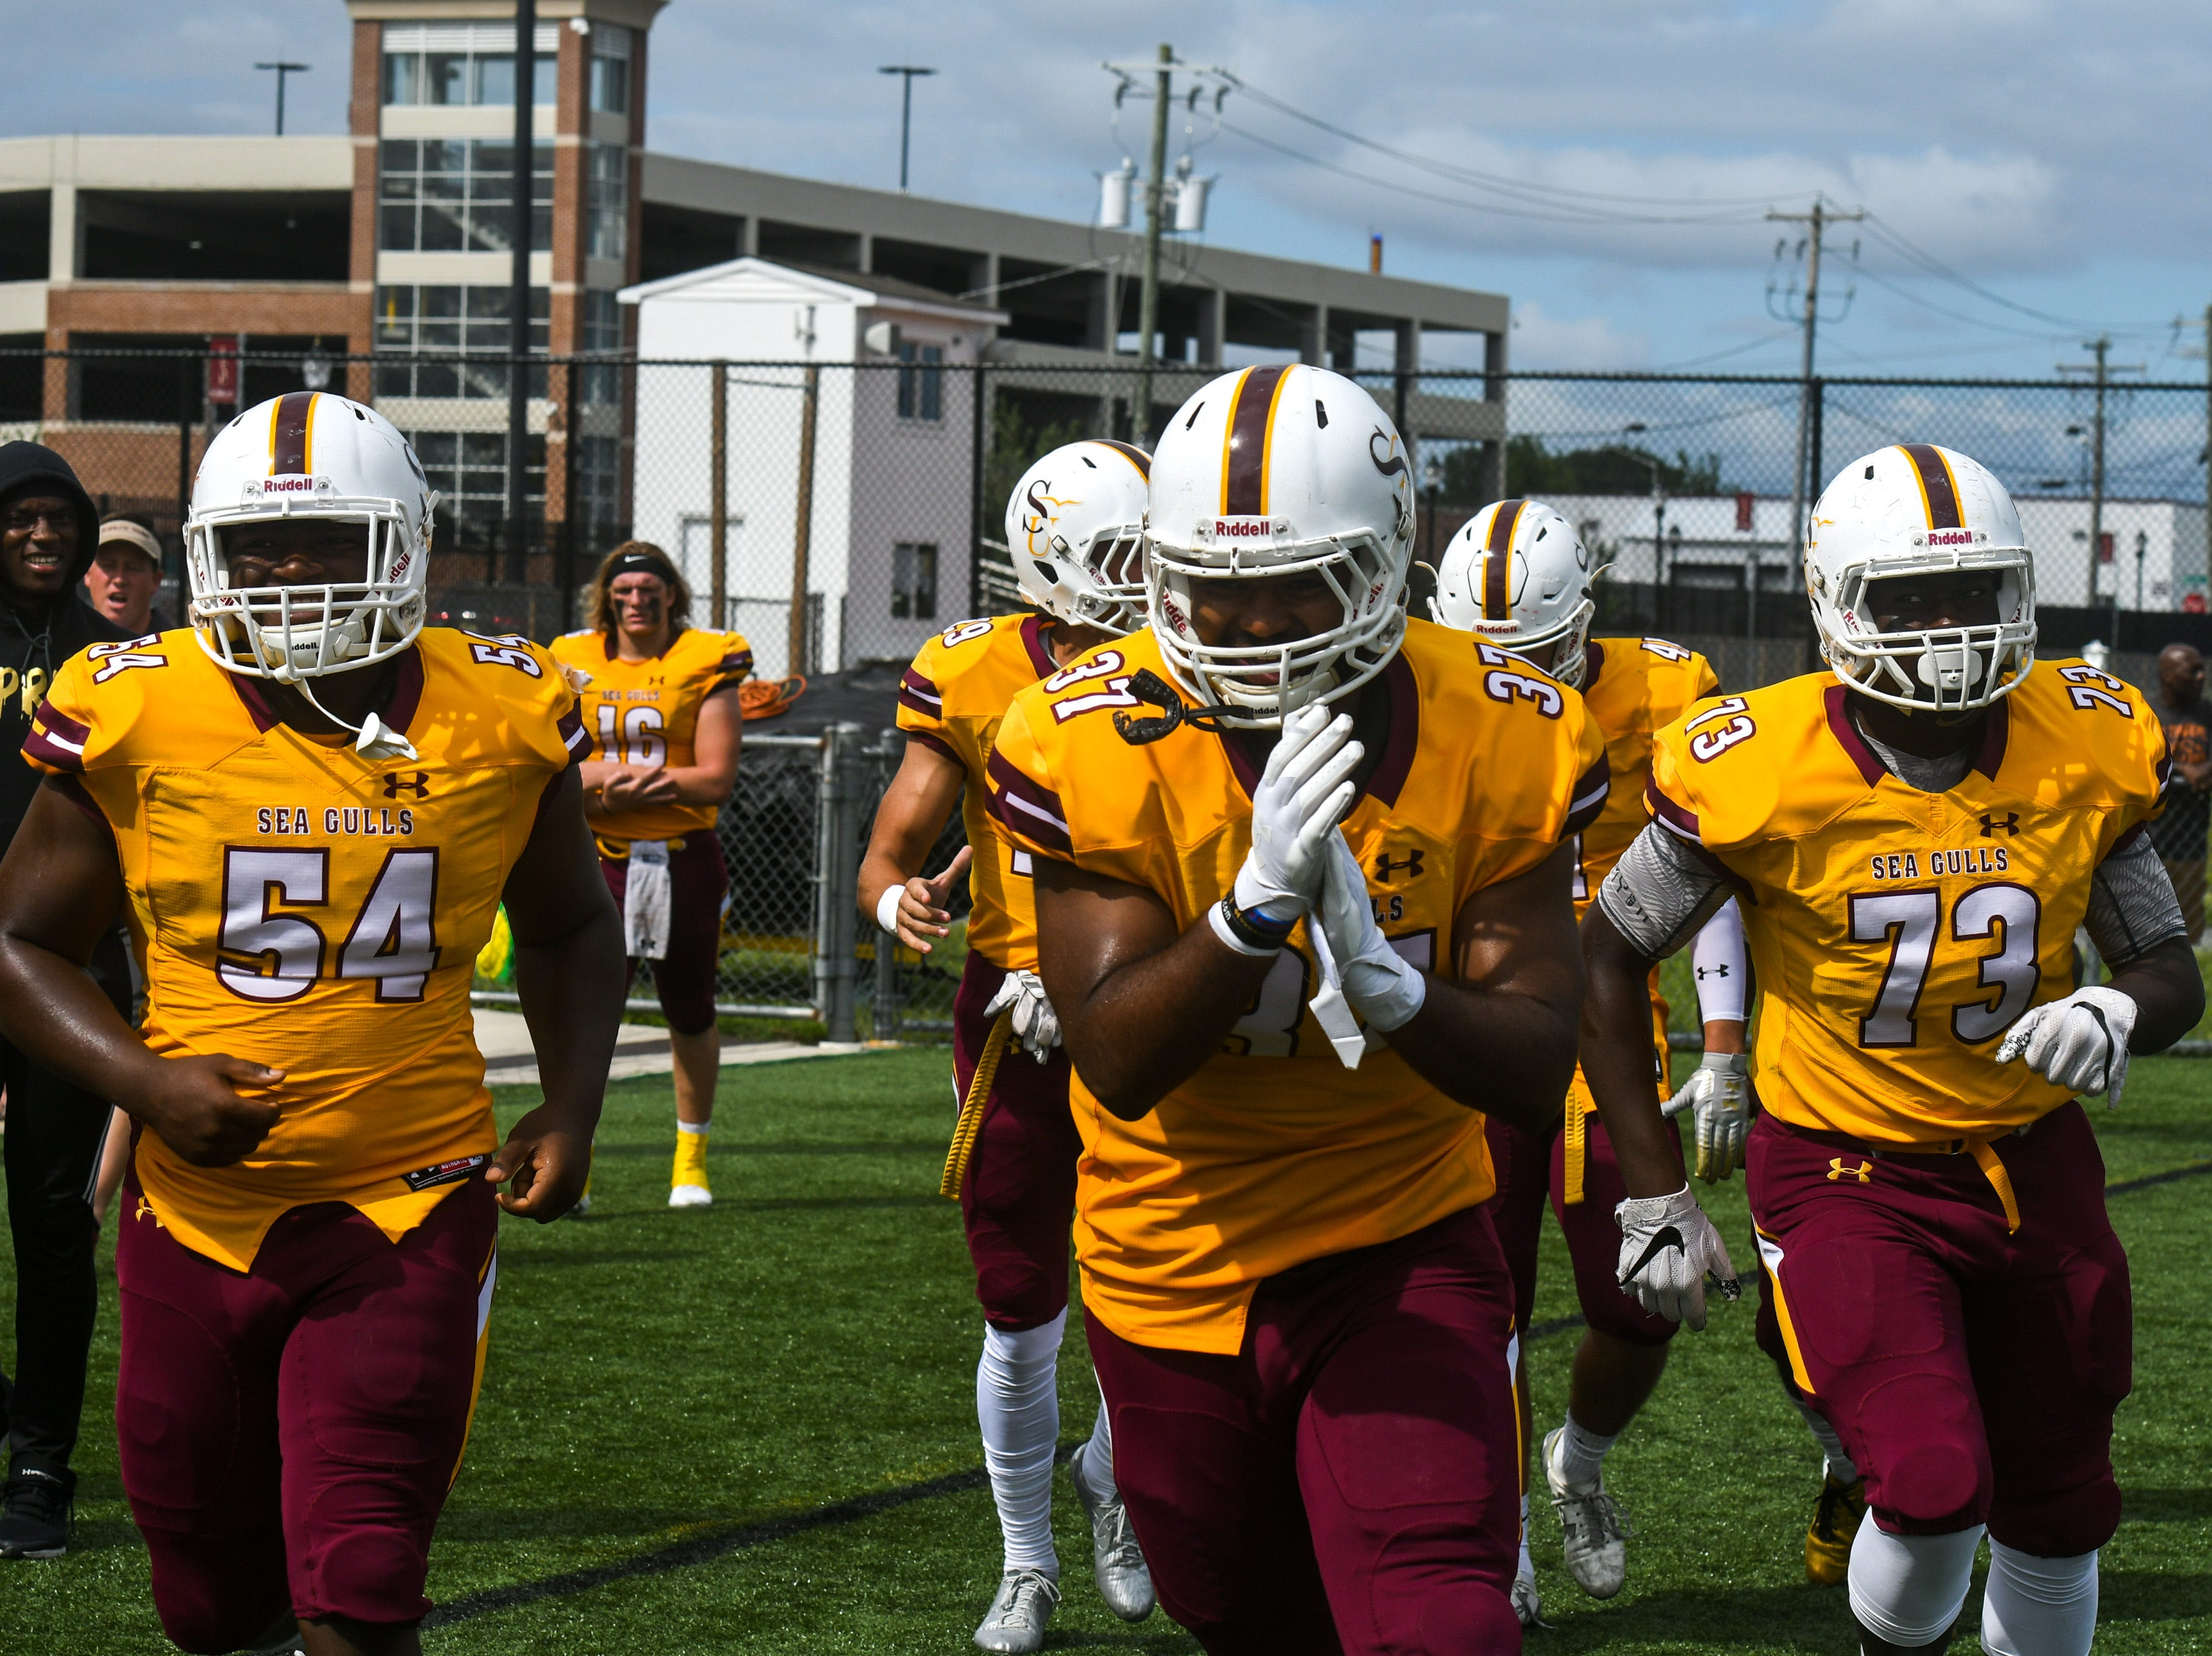 Salisbury University celebrates after a touchdown against Kean on Saturday, Sept 15, 2018 at Seagull Stadium.